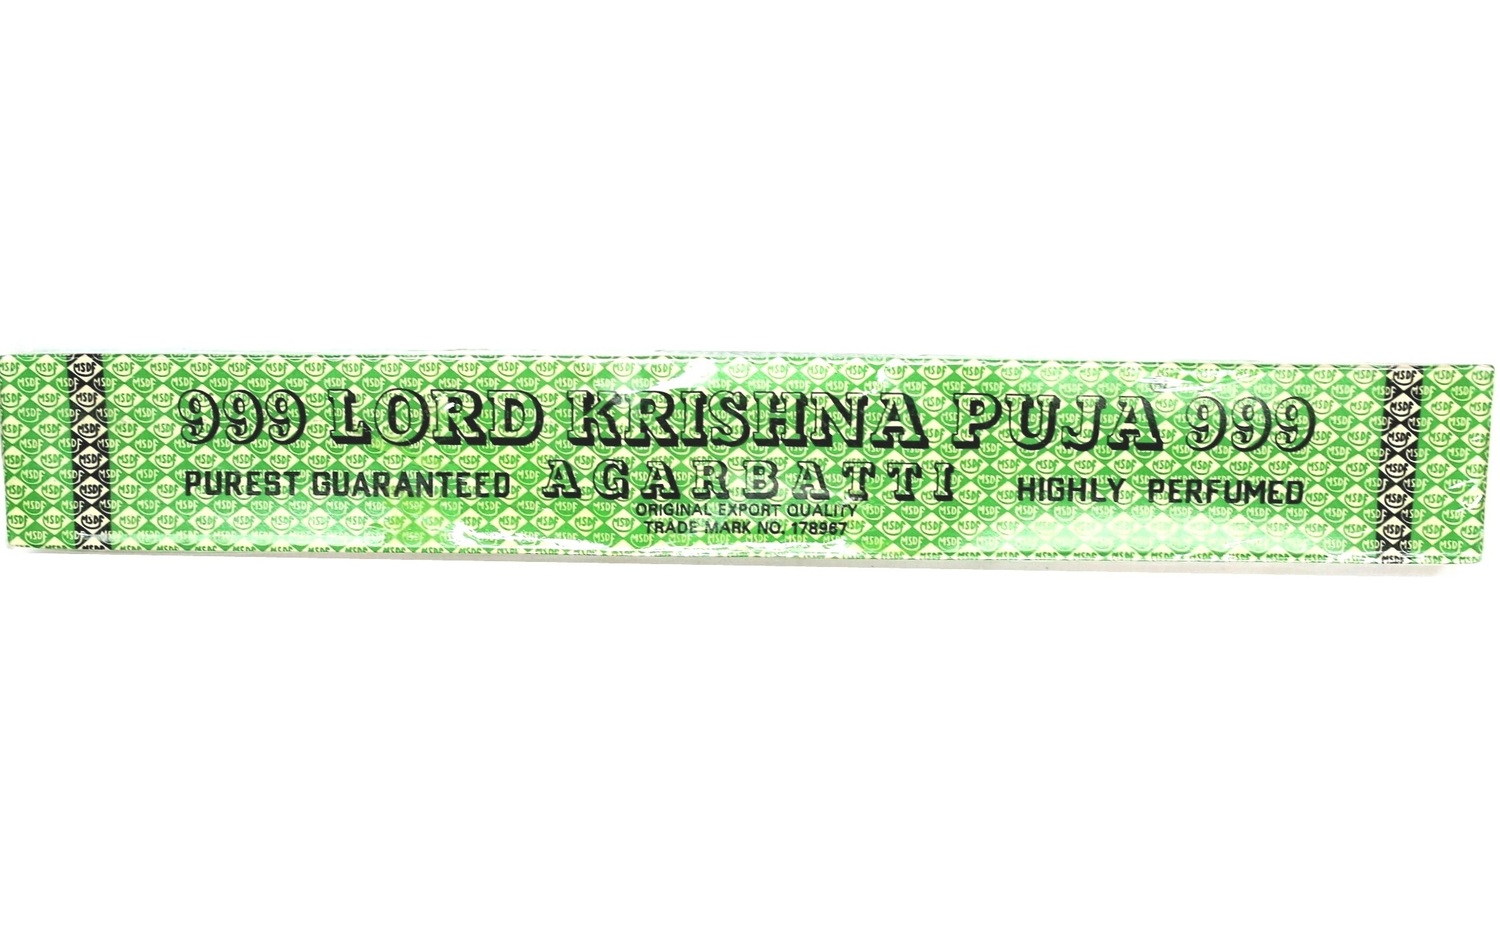 999 Lord Krishna Puja Incense | UK Powerfulhand com